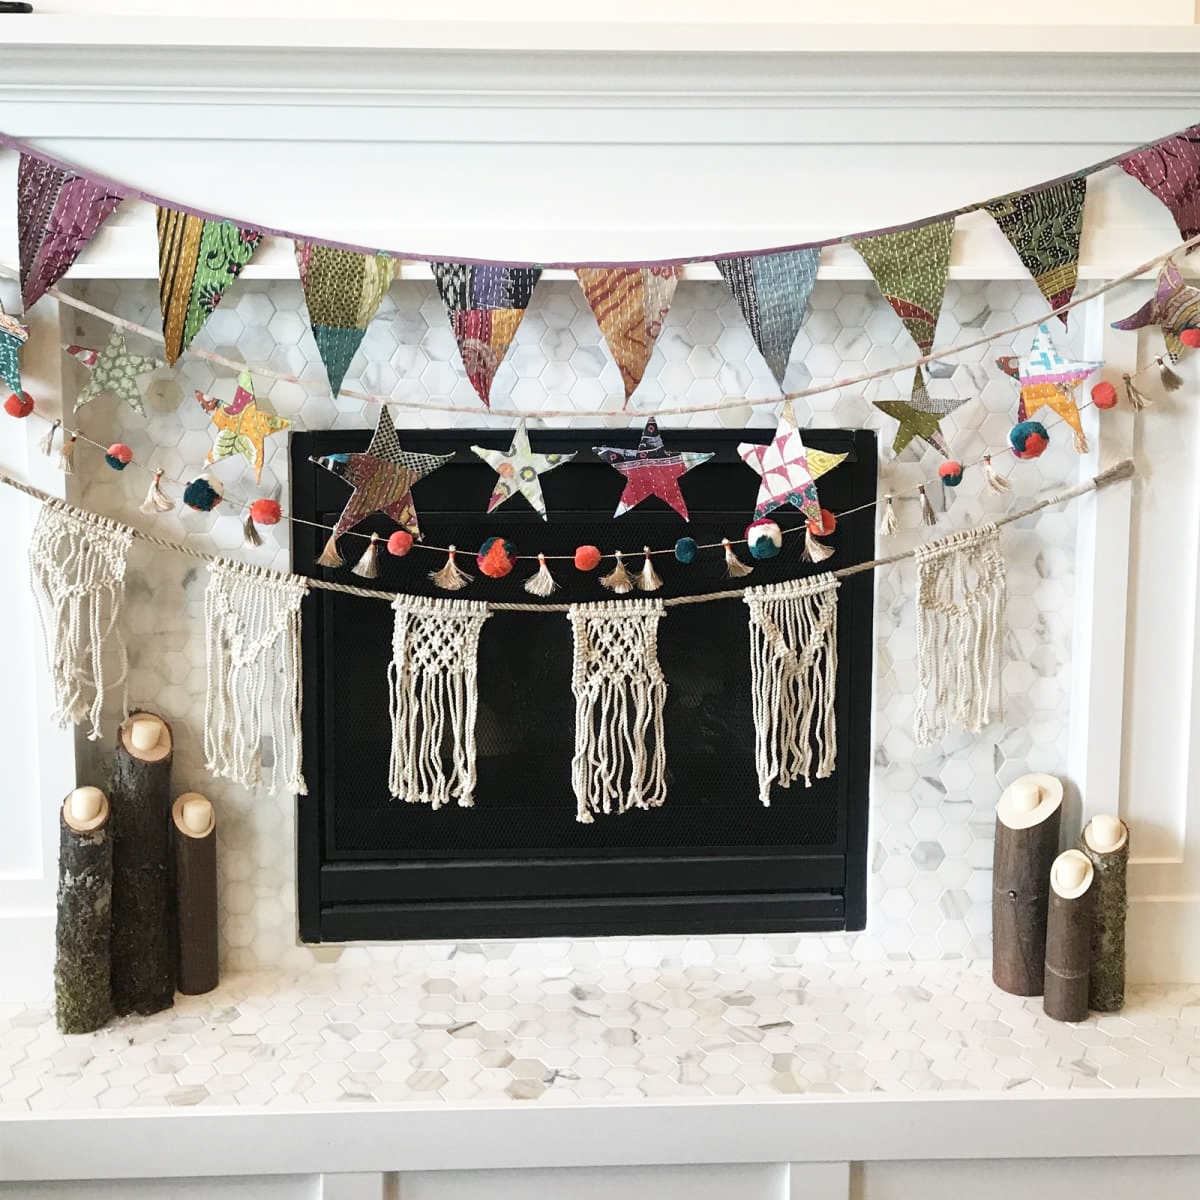 This Boho Flag Bunting is SO cute! I would love to decorate my home with this.  $14.99 plus $3.99 Shipping for the first item and $2.29 for each additional item. US only. Seller usually ships within 5 business days. Ships no later than Thu, Aug 29.